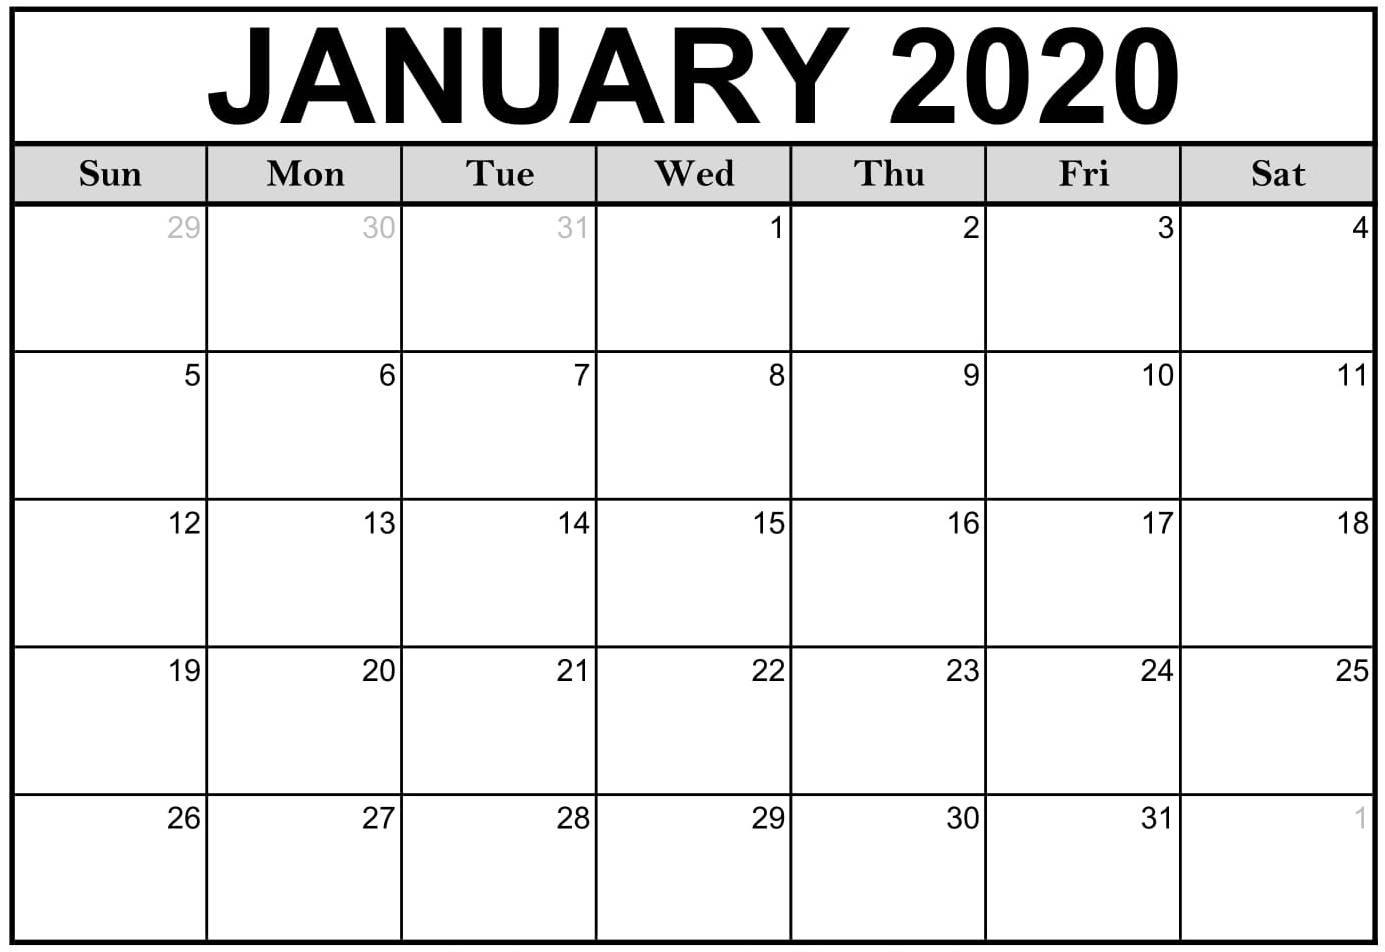 Print Calendar Nz 2020 | Calendar Printables Free Templates pertaining to Free Printable Monthly Calendar Pages With Lines